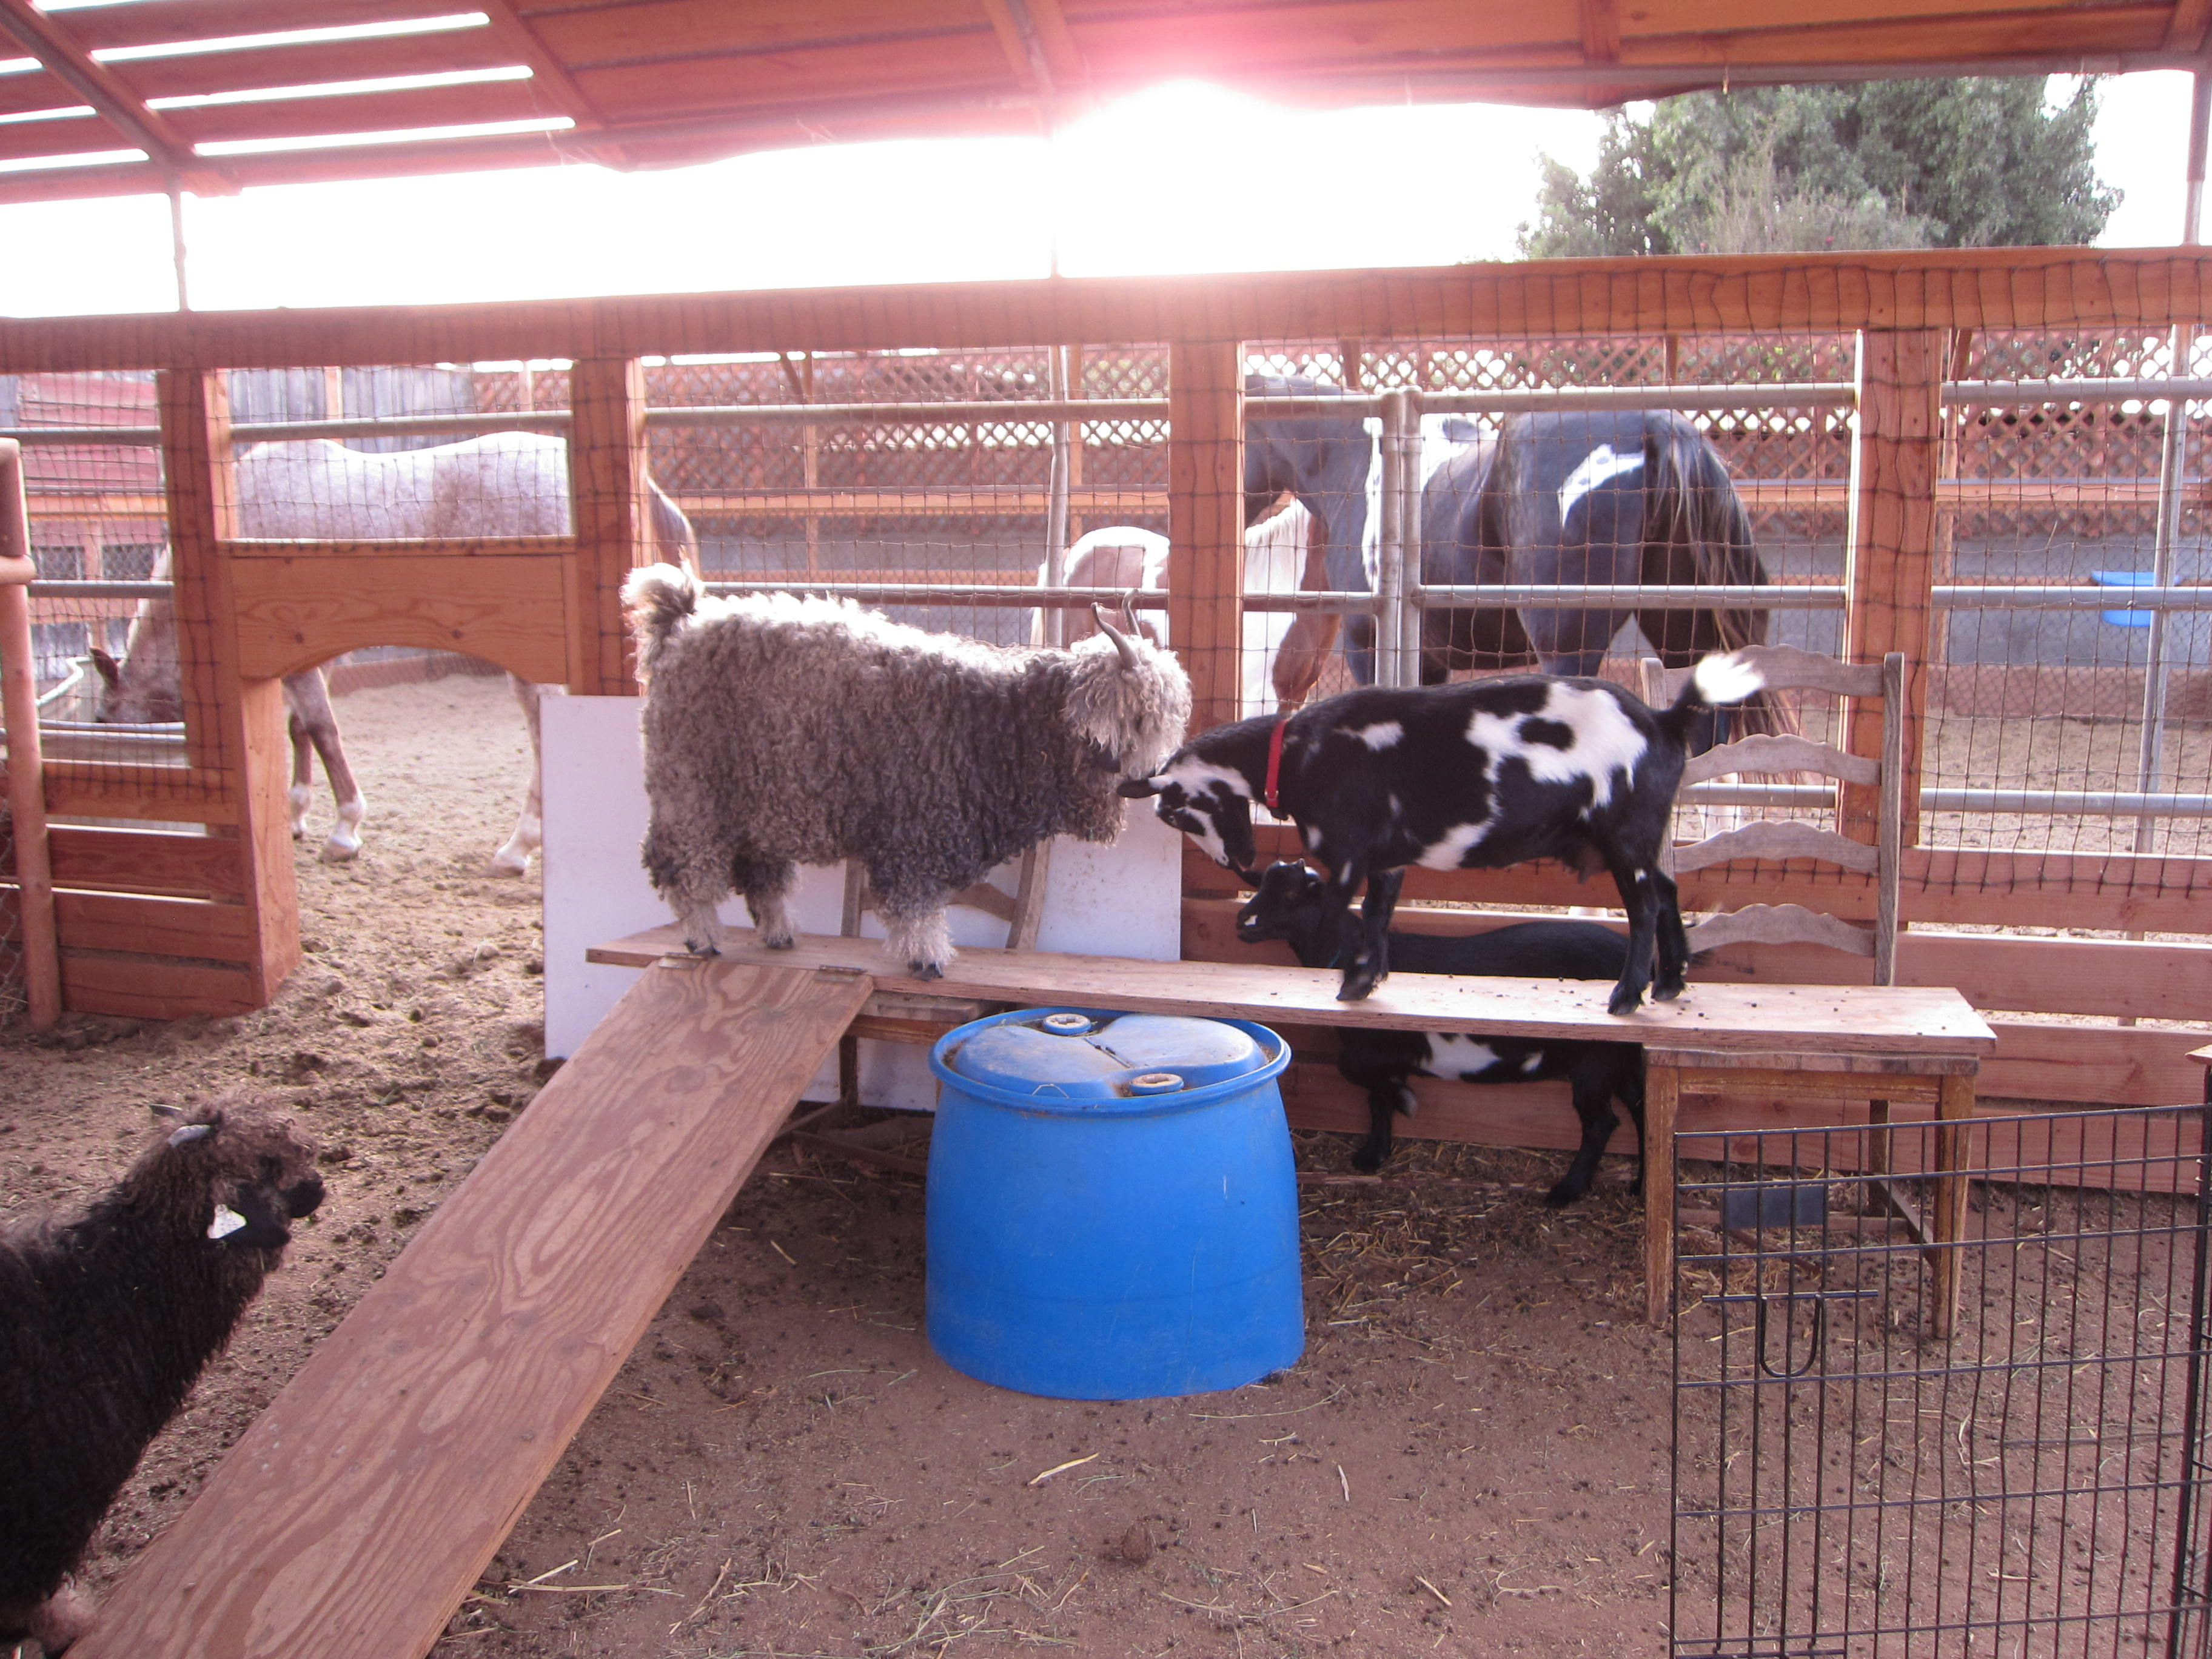 Goats! For milk and for fiber. They have plenty of room to run around and climb.